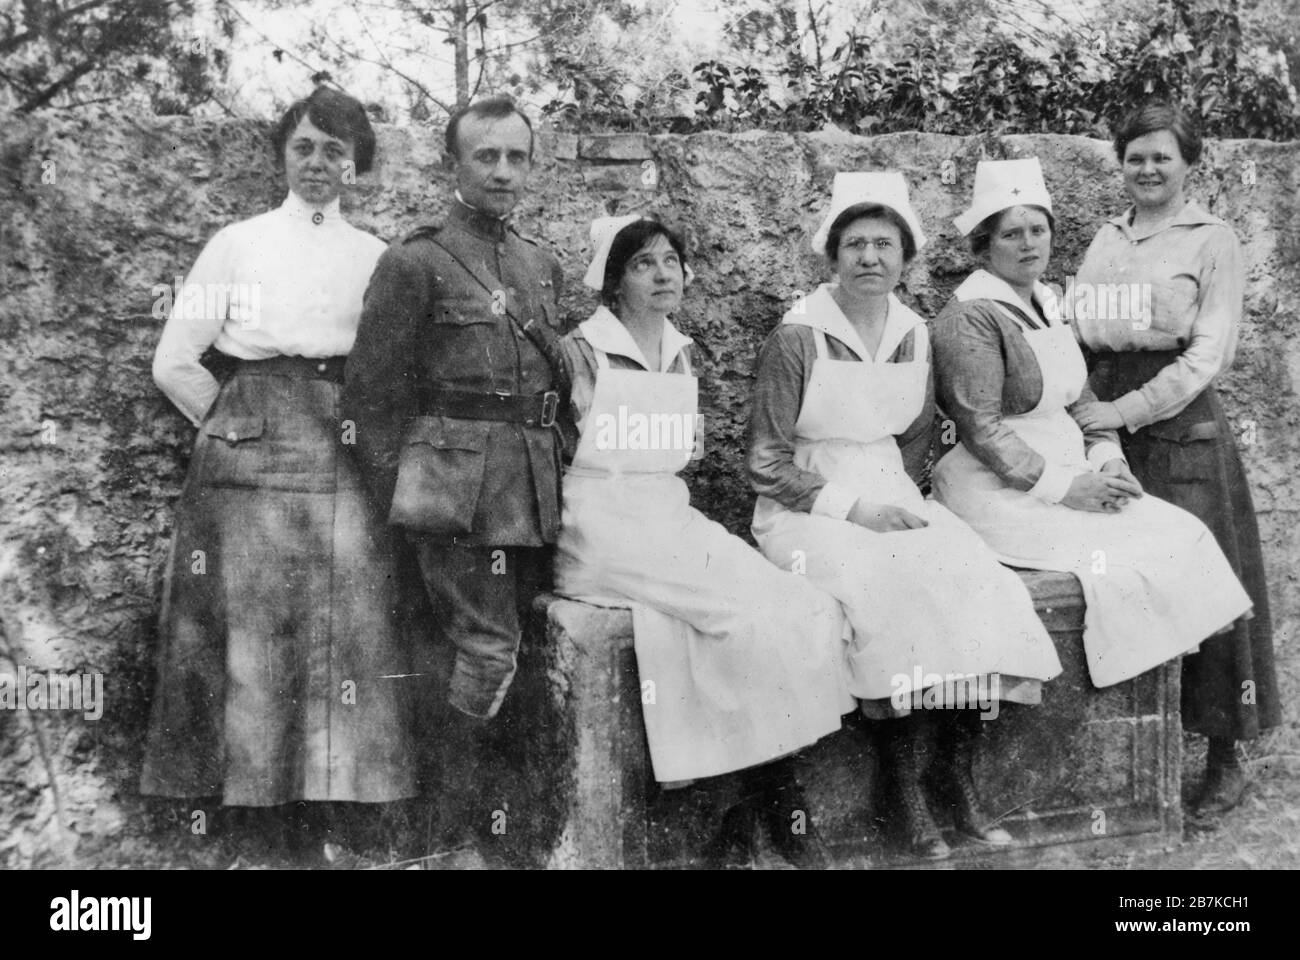 Flu fighters in Montenegro. They went to Montenegro to fight smallpox, and typhus epidemics and when influenza broke out there had their hands full taking care of the victims of the newer epidemic. They belong to the American Red Cross hospital staff in Podgoritza, Montenegro. From left to right they are: Miss Margaret Lena Johnson, Chicago; Major Joseph F. Jaros, Chicago; Miss Mary Theresa Beulhauser, New York; Miss Elizabeth G. Mitchell, Newport R.I. and Dr. Katherine M. Cook, New Wilmington, PA. March 1920 Stock Photo